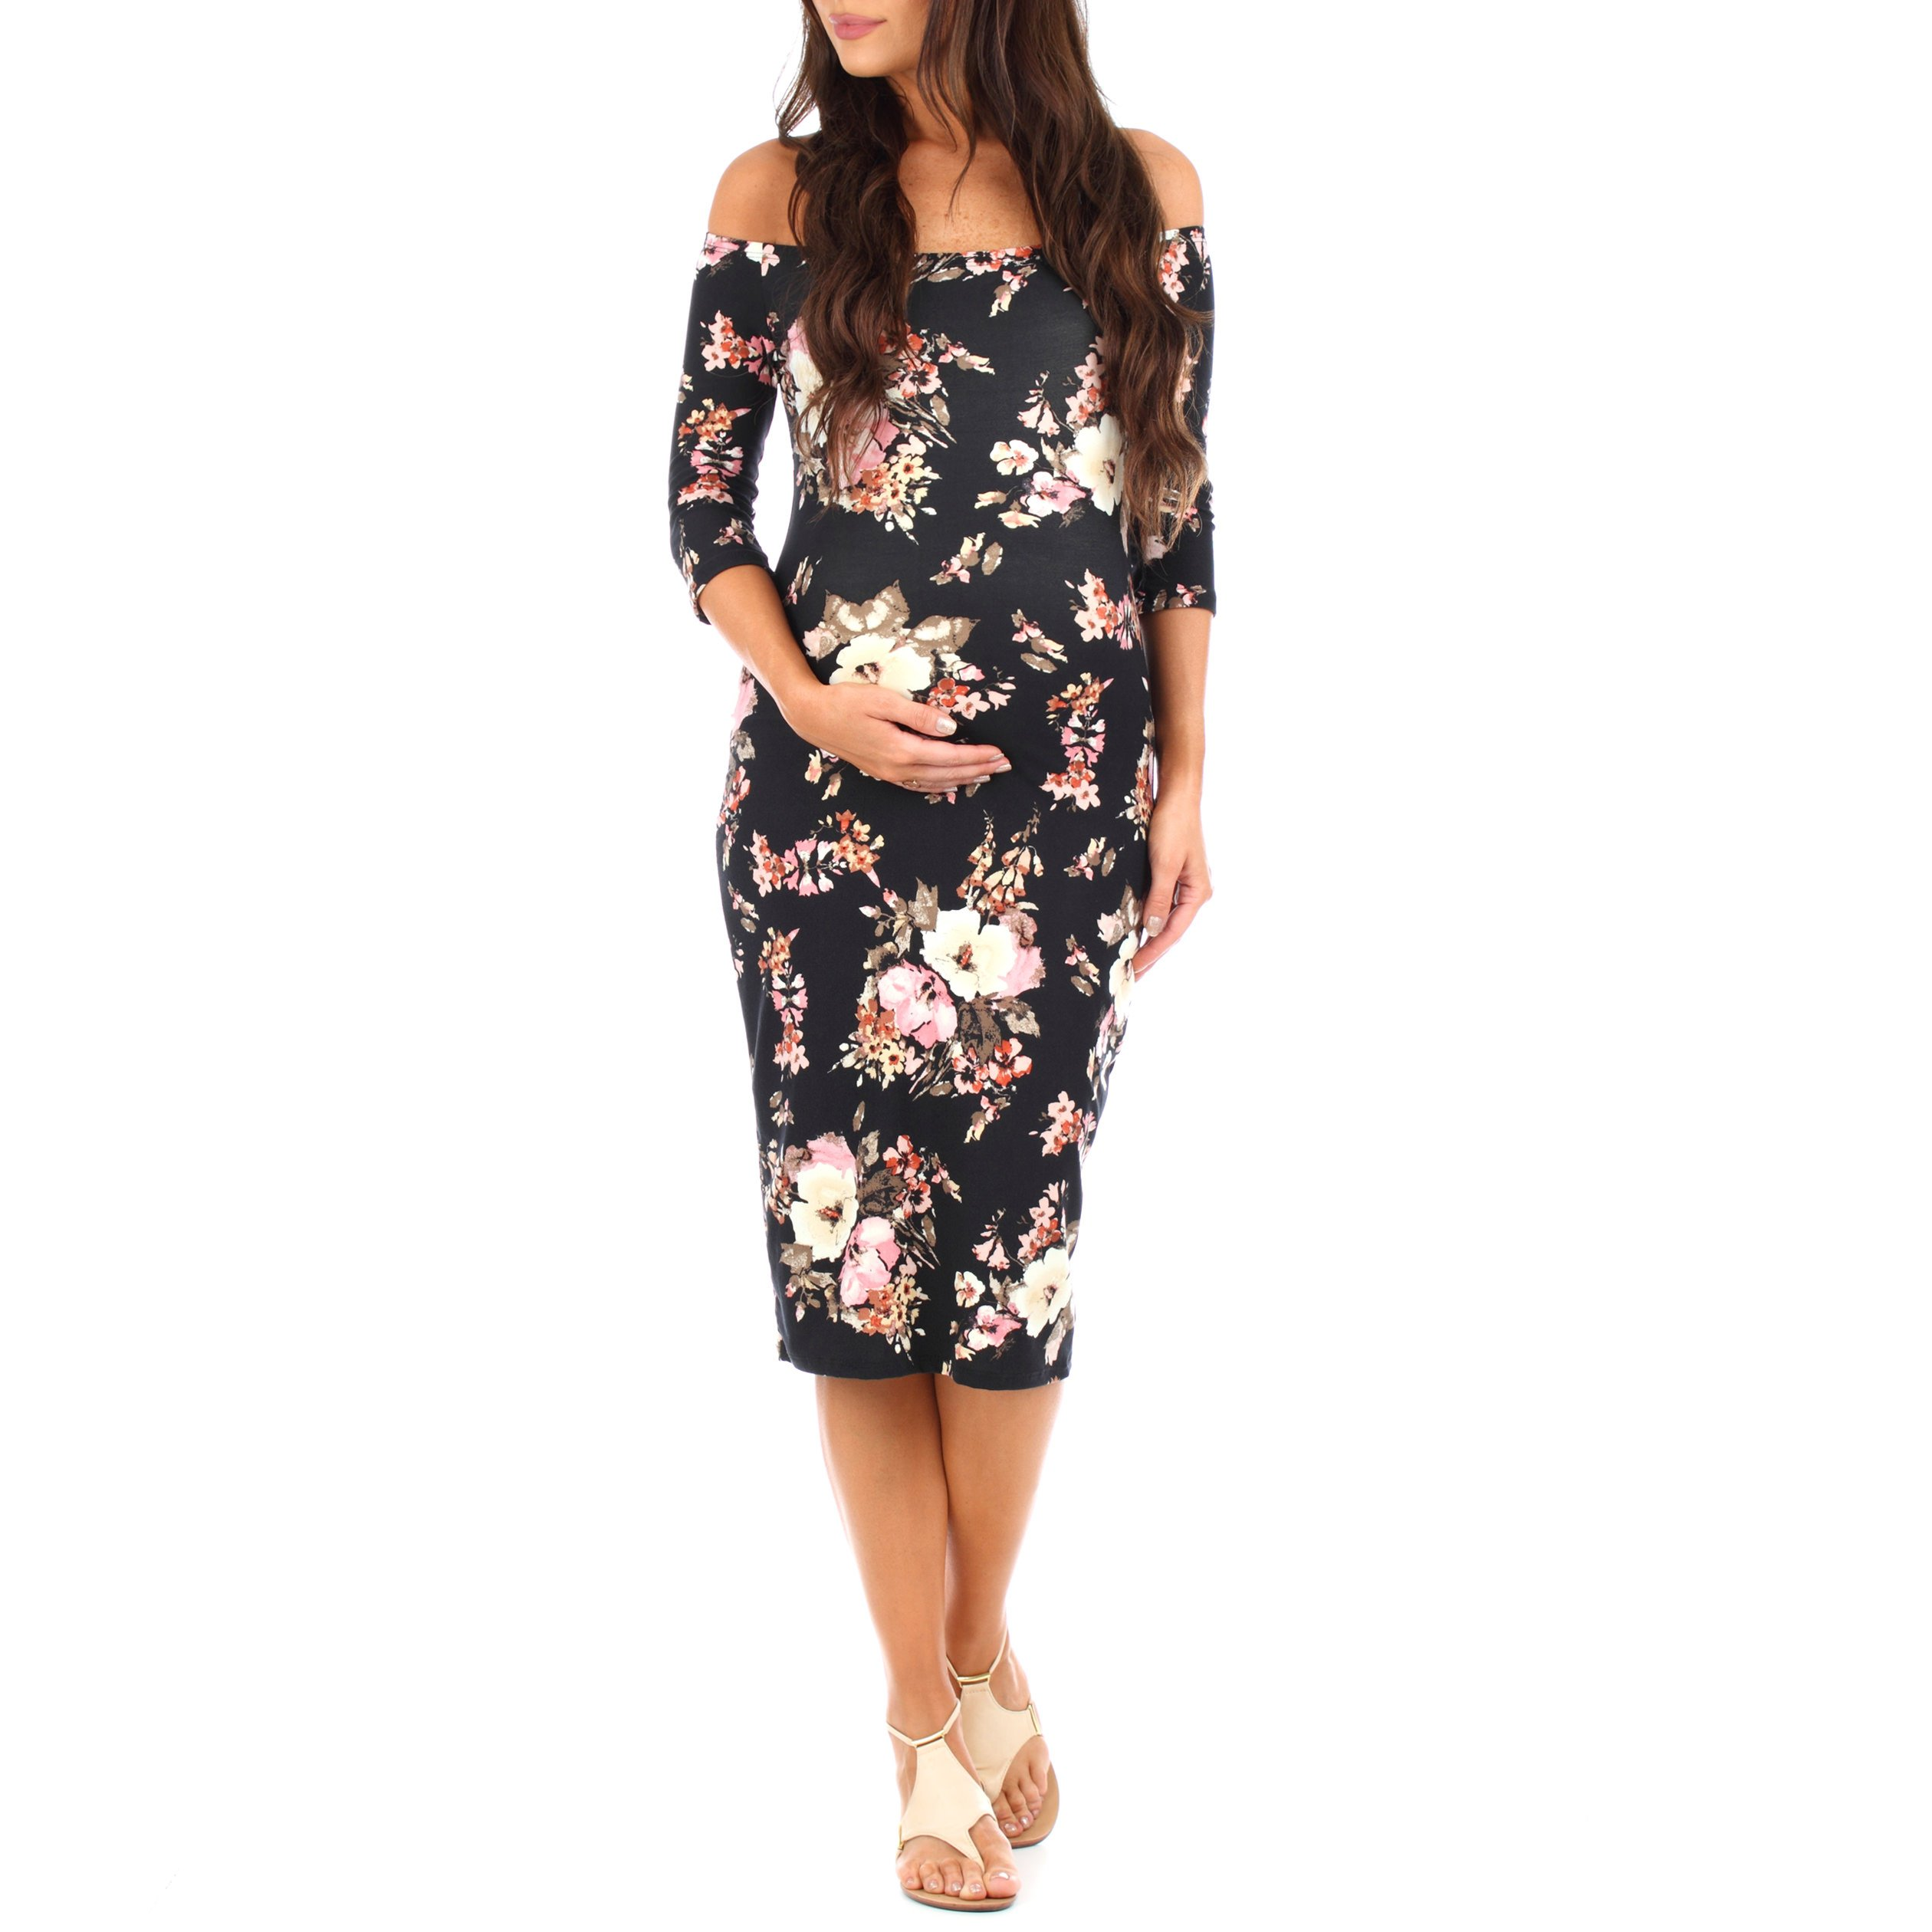 Women's Maternity Open Shoulder Dress in Floral Print - Made in USA